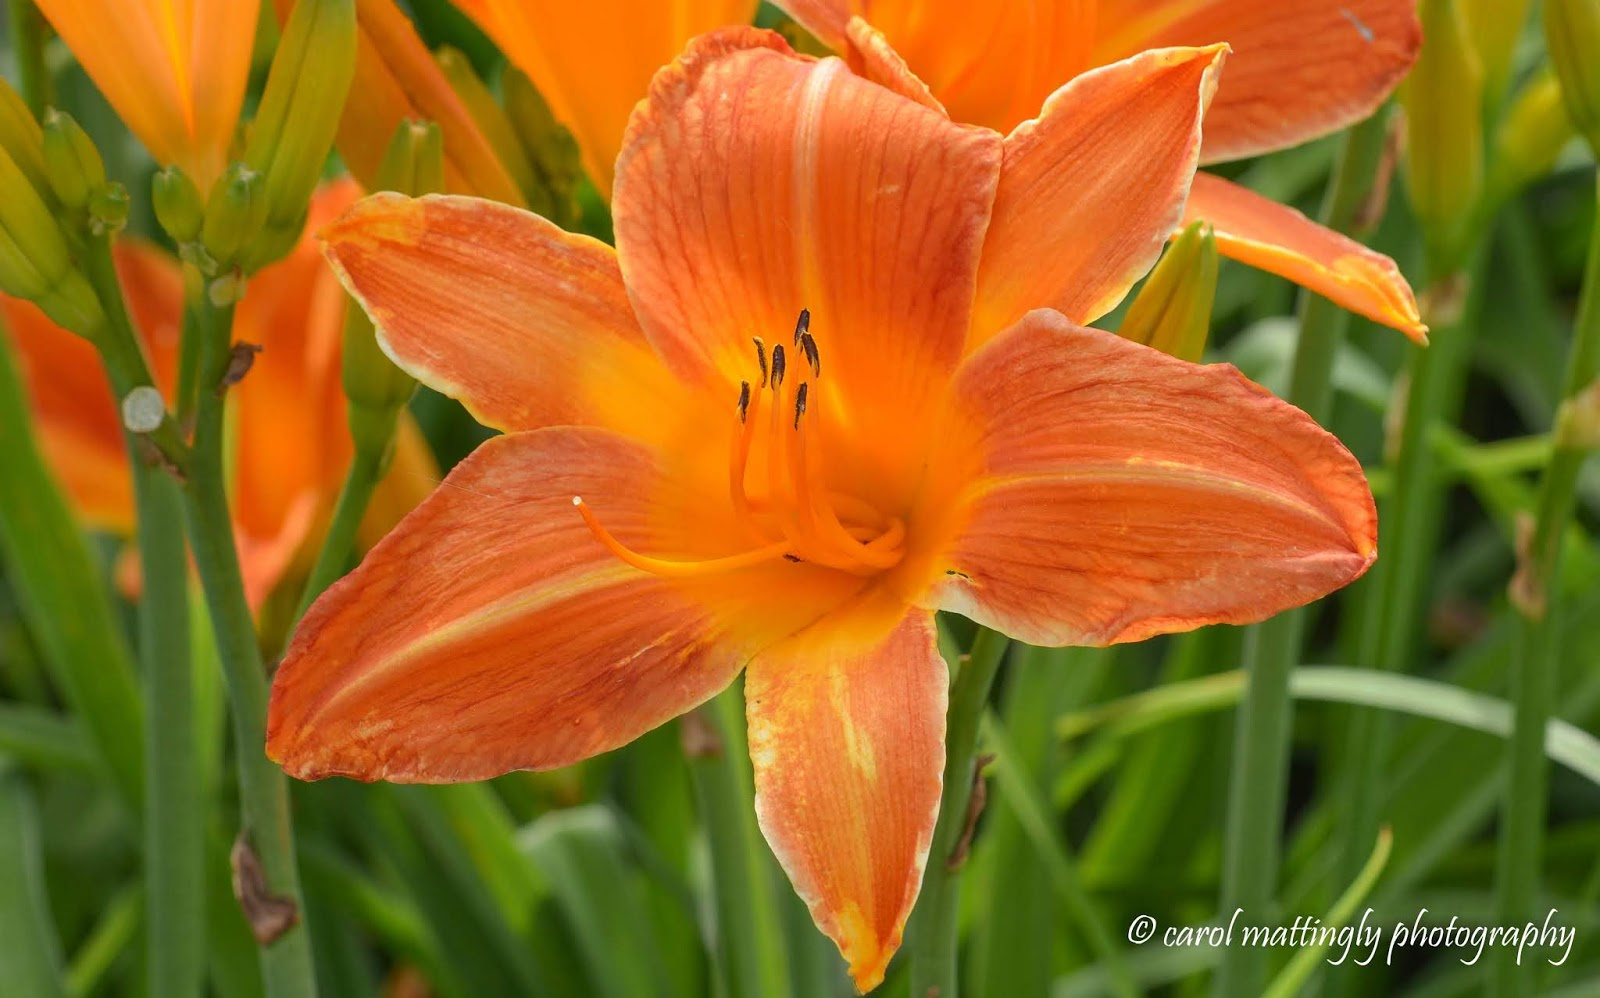 Carol mattingly photography orange peach ruffled apricot finally heres the last of the orange themed day lilies i captured while visiting bernheim this beauty is called orange vols i havent a clue where the izmirmasajfo